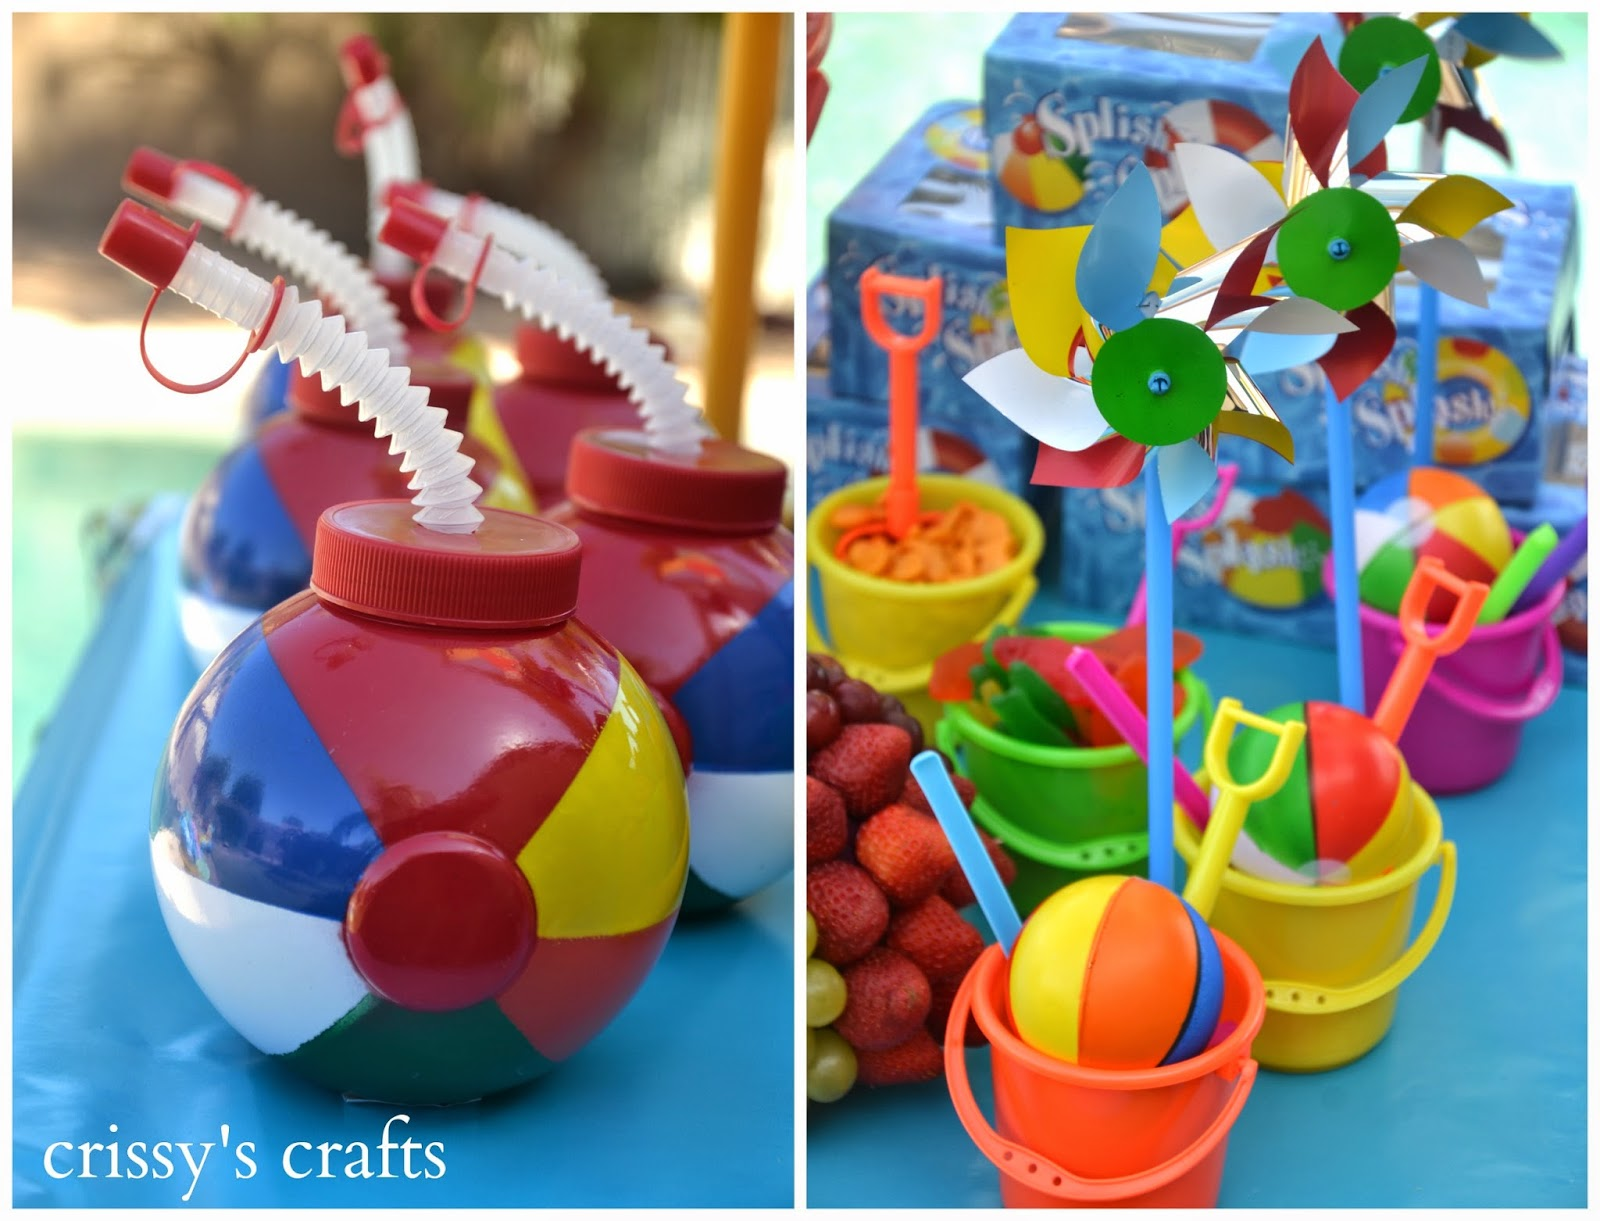 The children took home some cool favors like beach ball cups beach